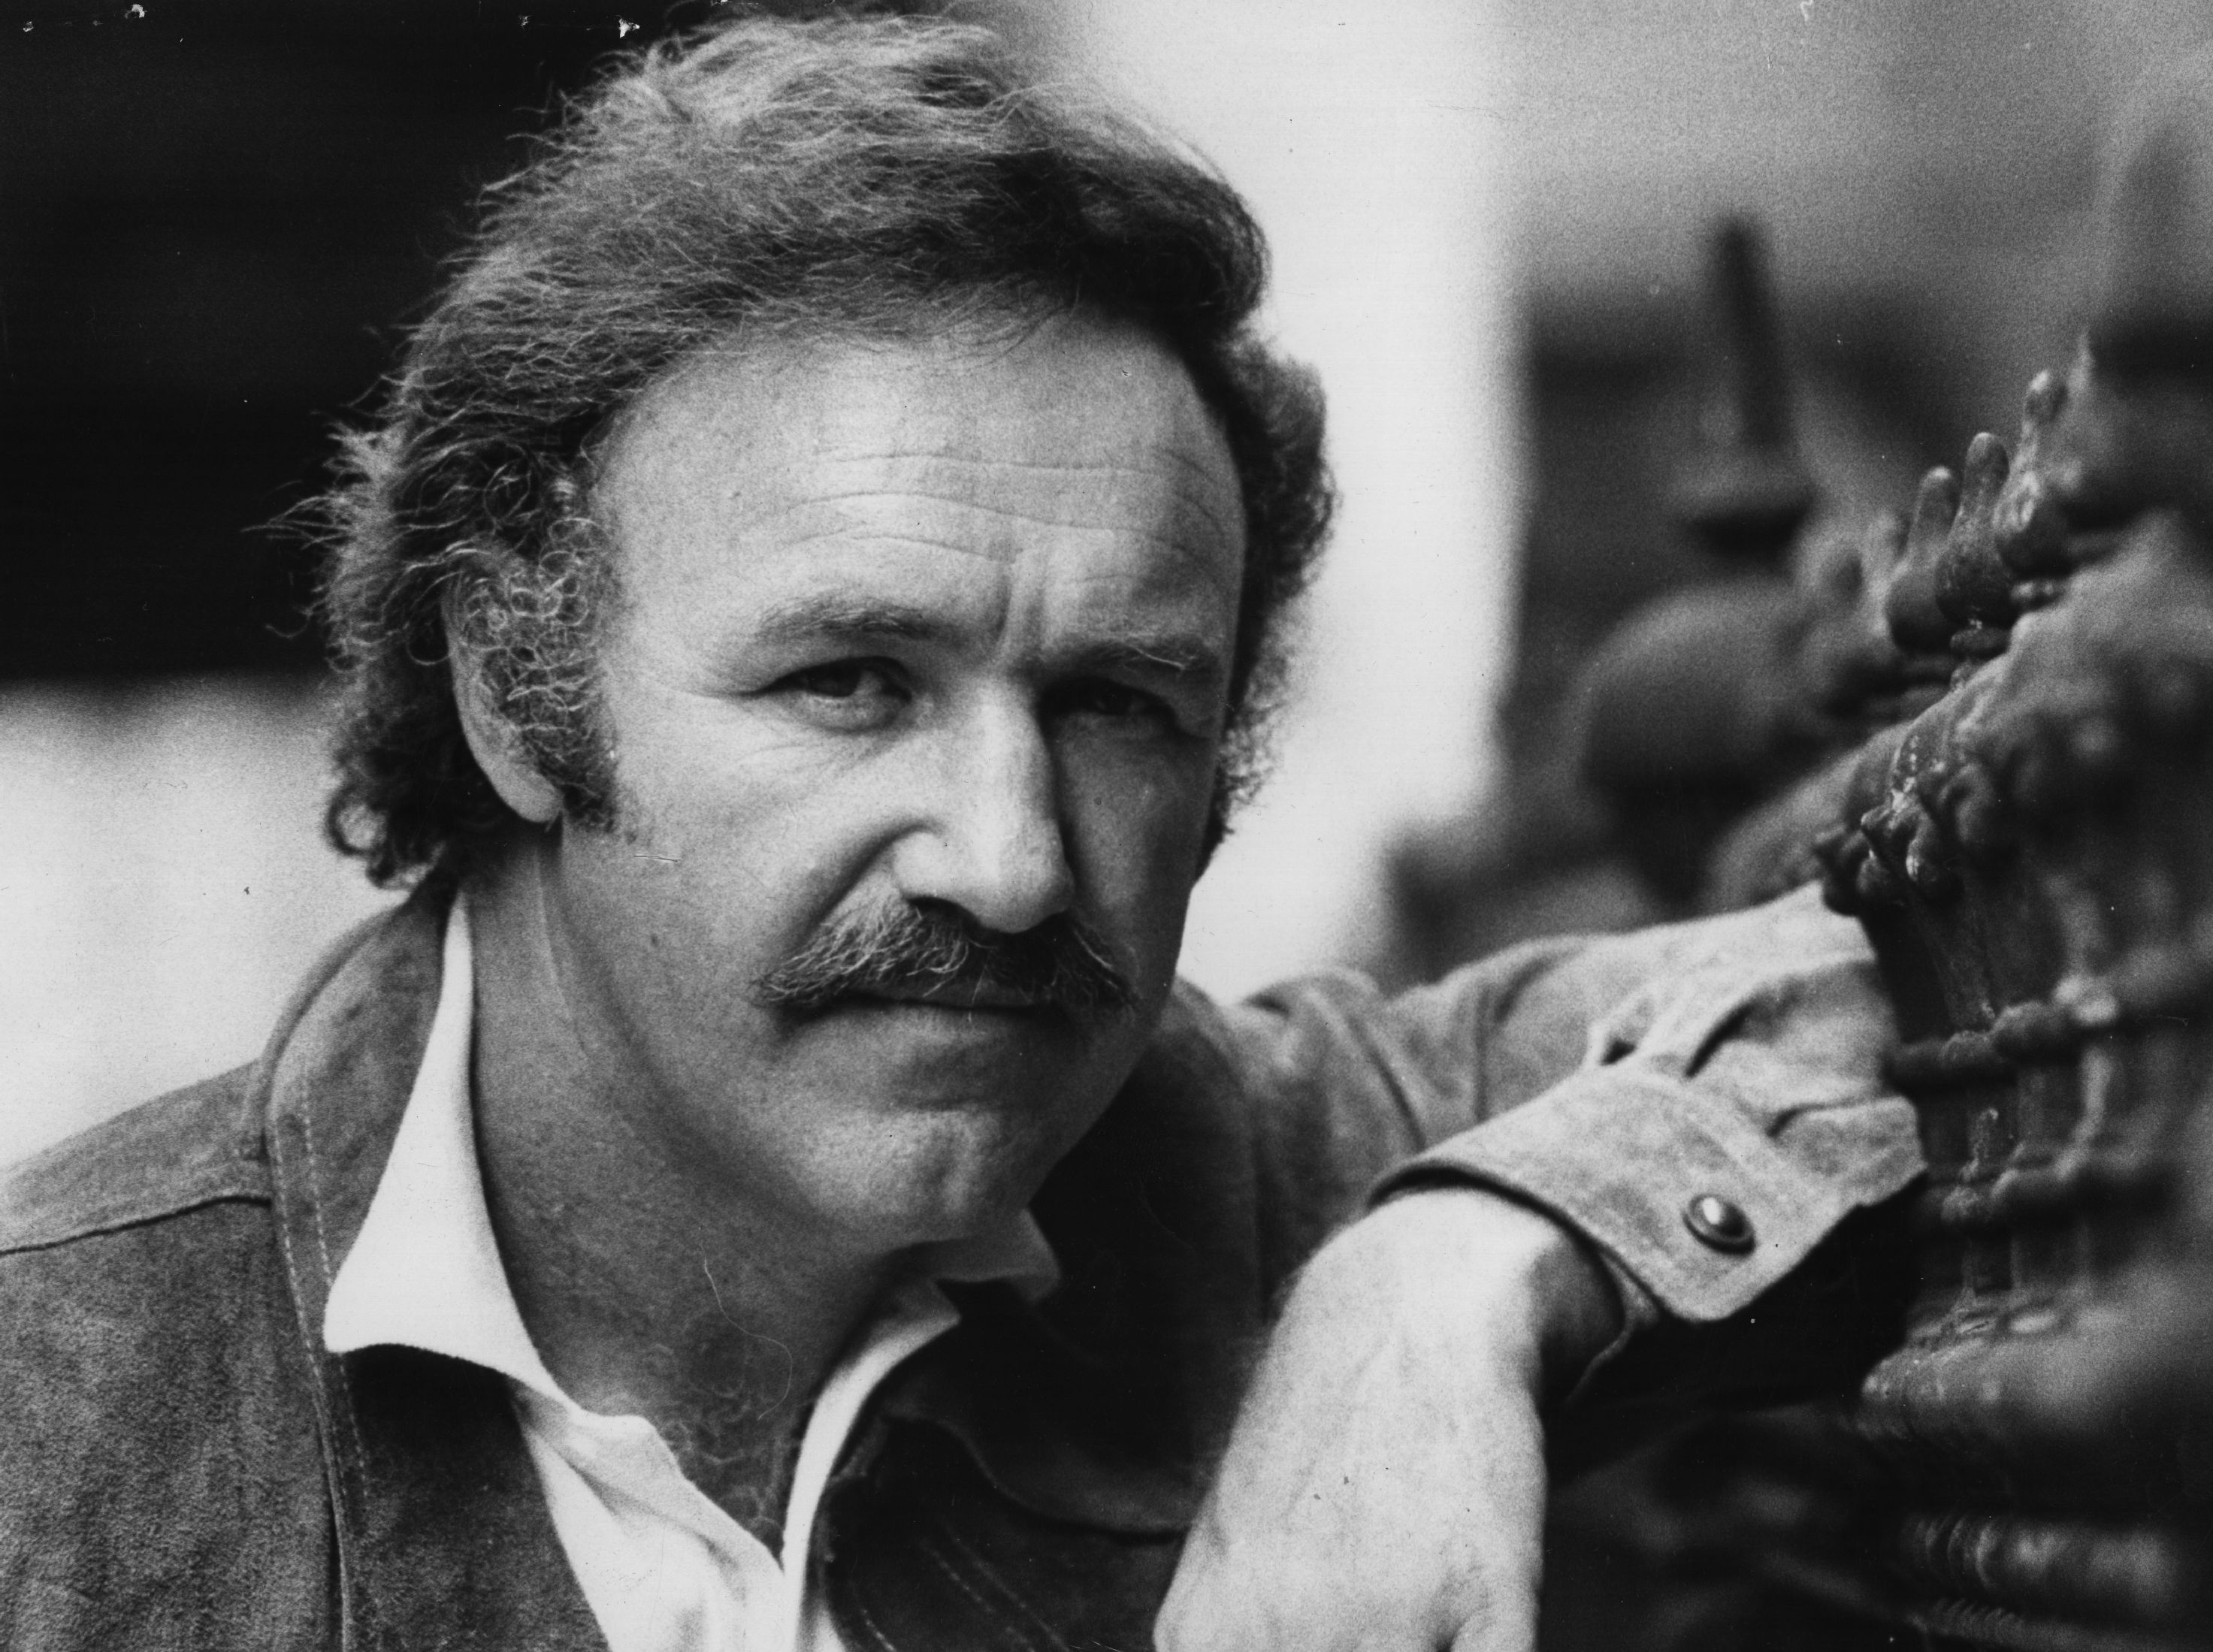 American actor, Gene Hackman. | Source: Getty Images